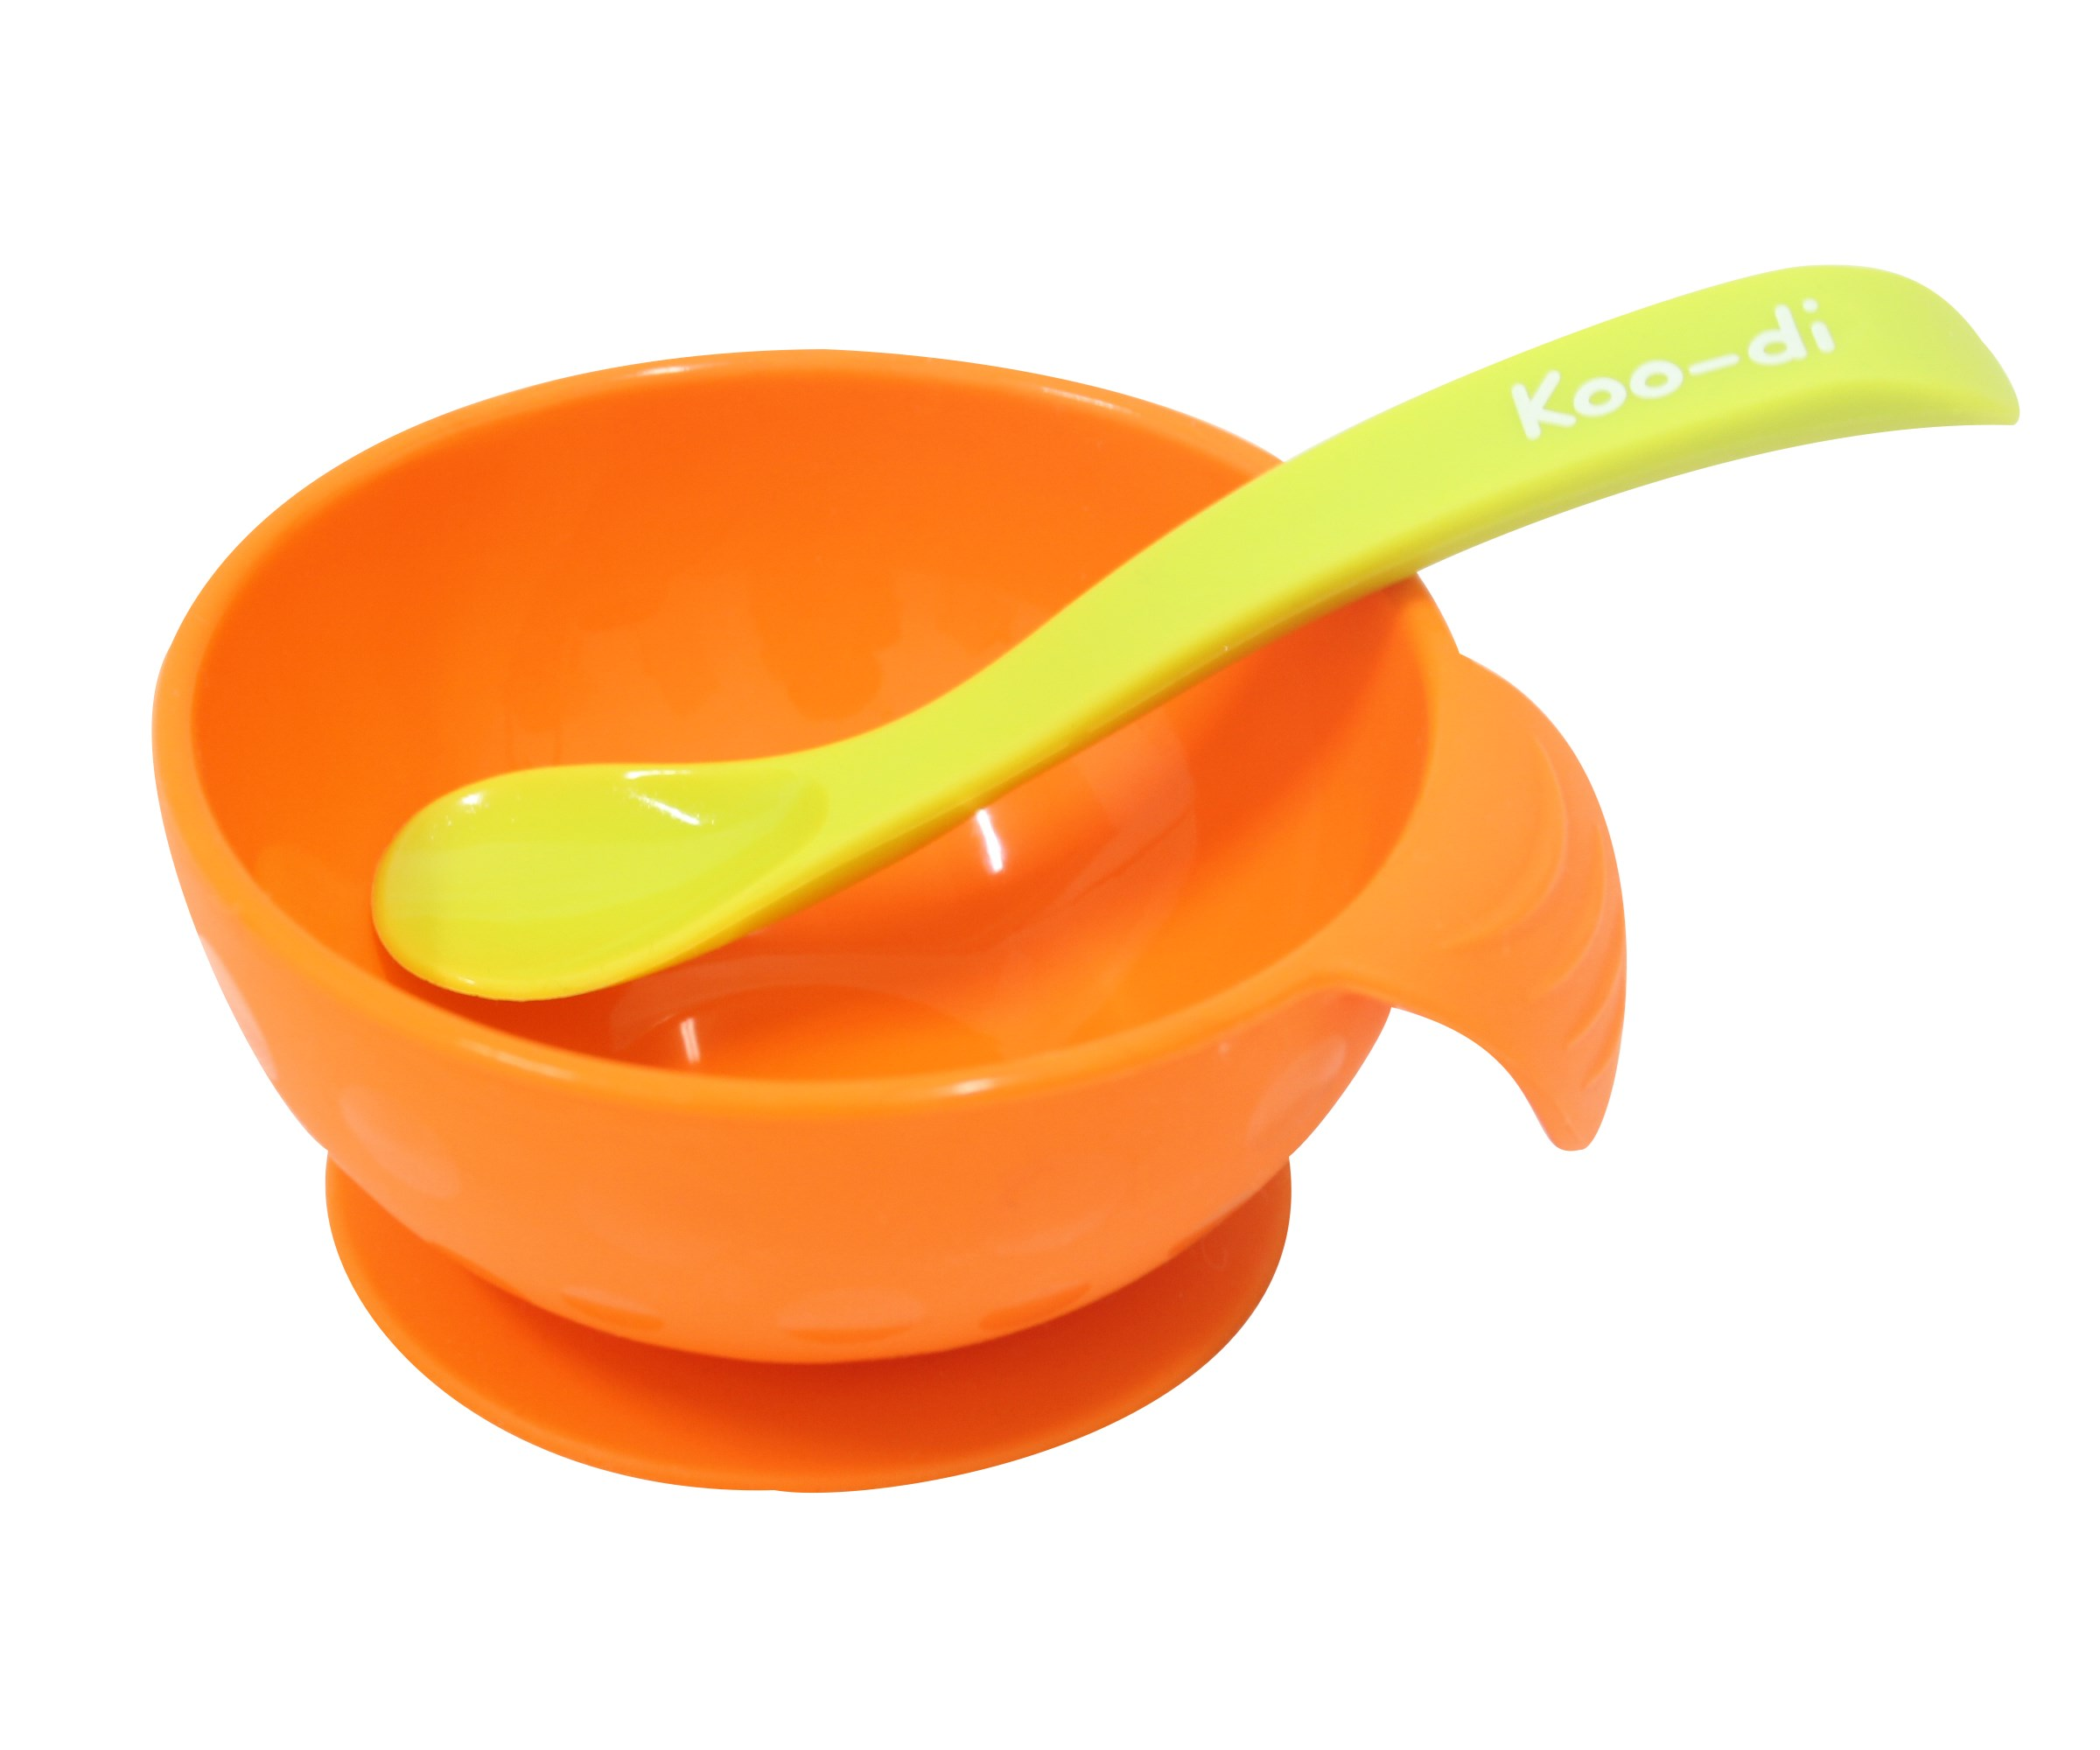 Koo-di Feed Me Silicone Bowl and Spoon, Orange and Lime